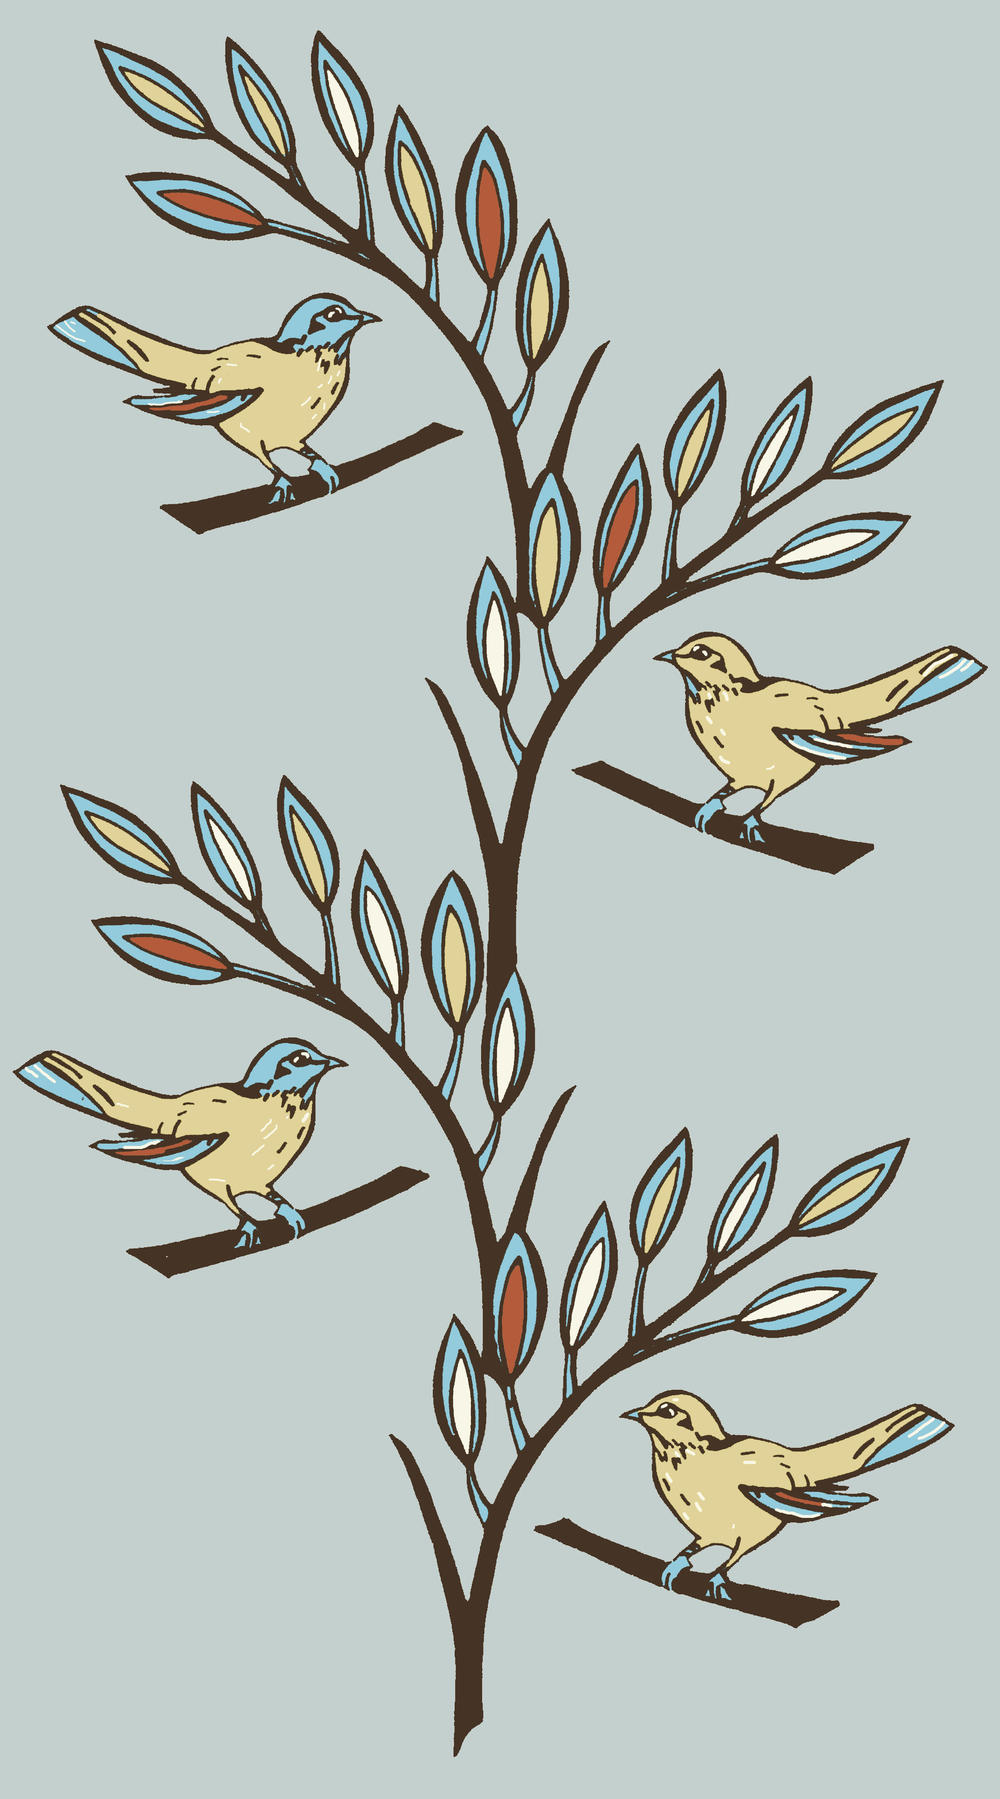 Birds on a branch design